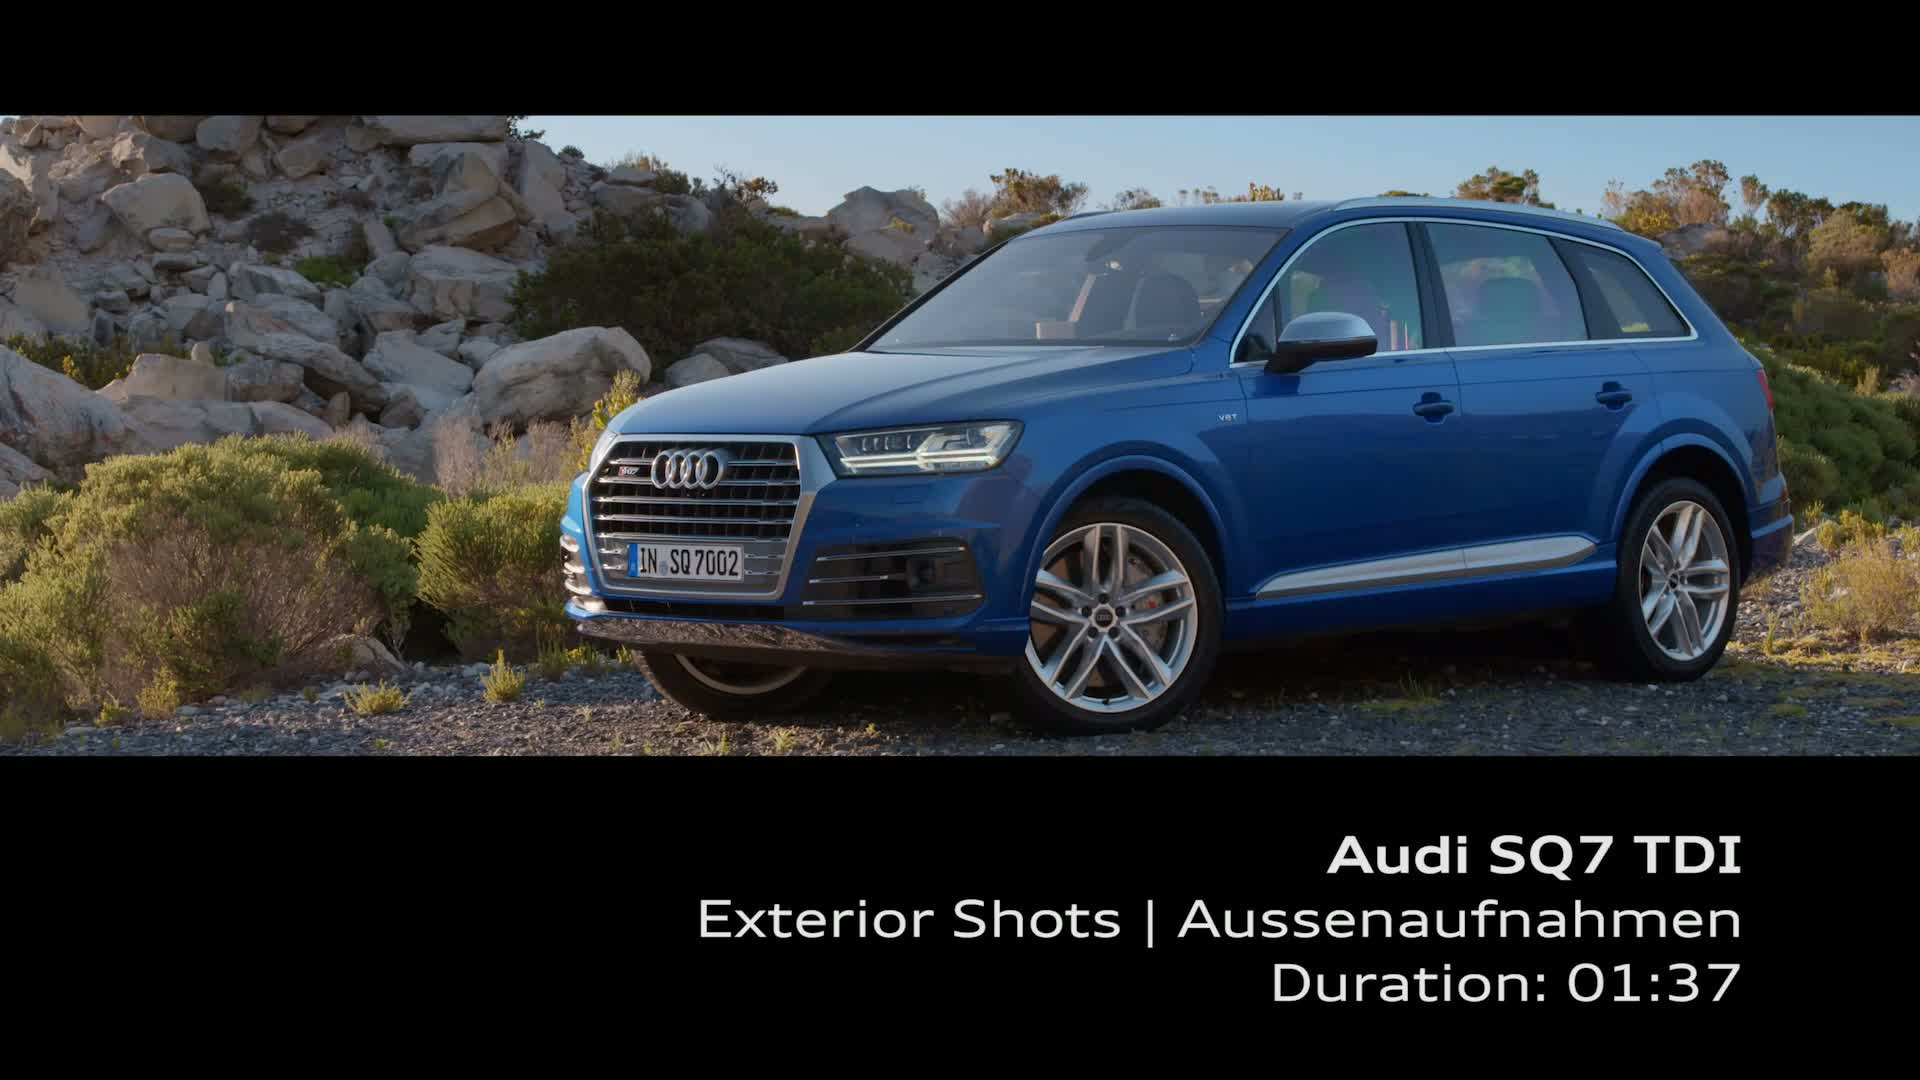 Audi SQ7 TDI - Footage